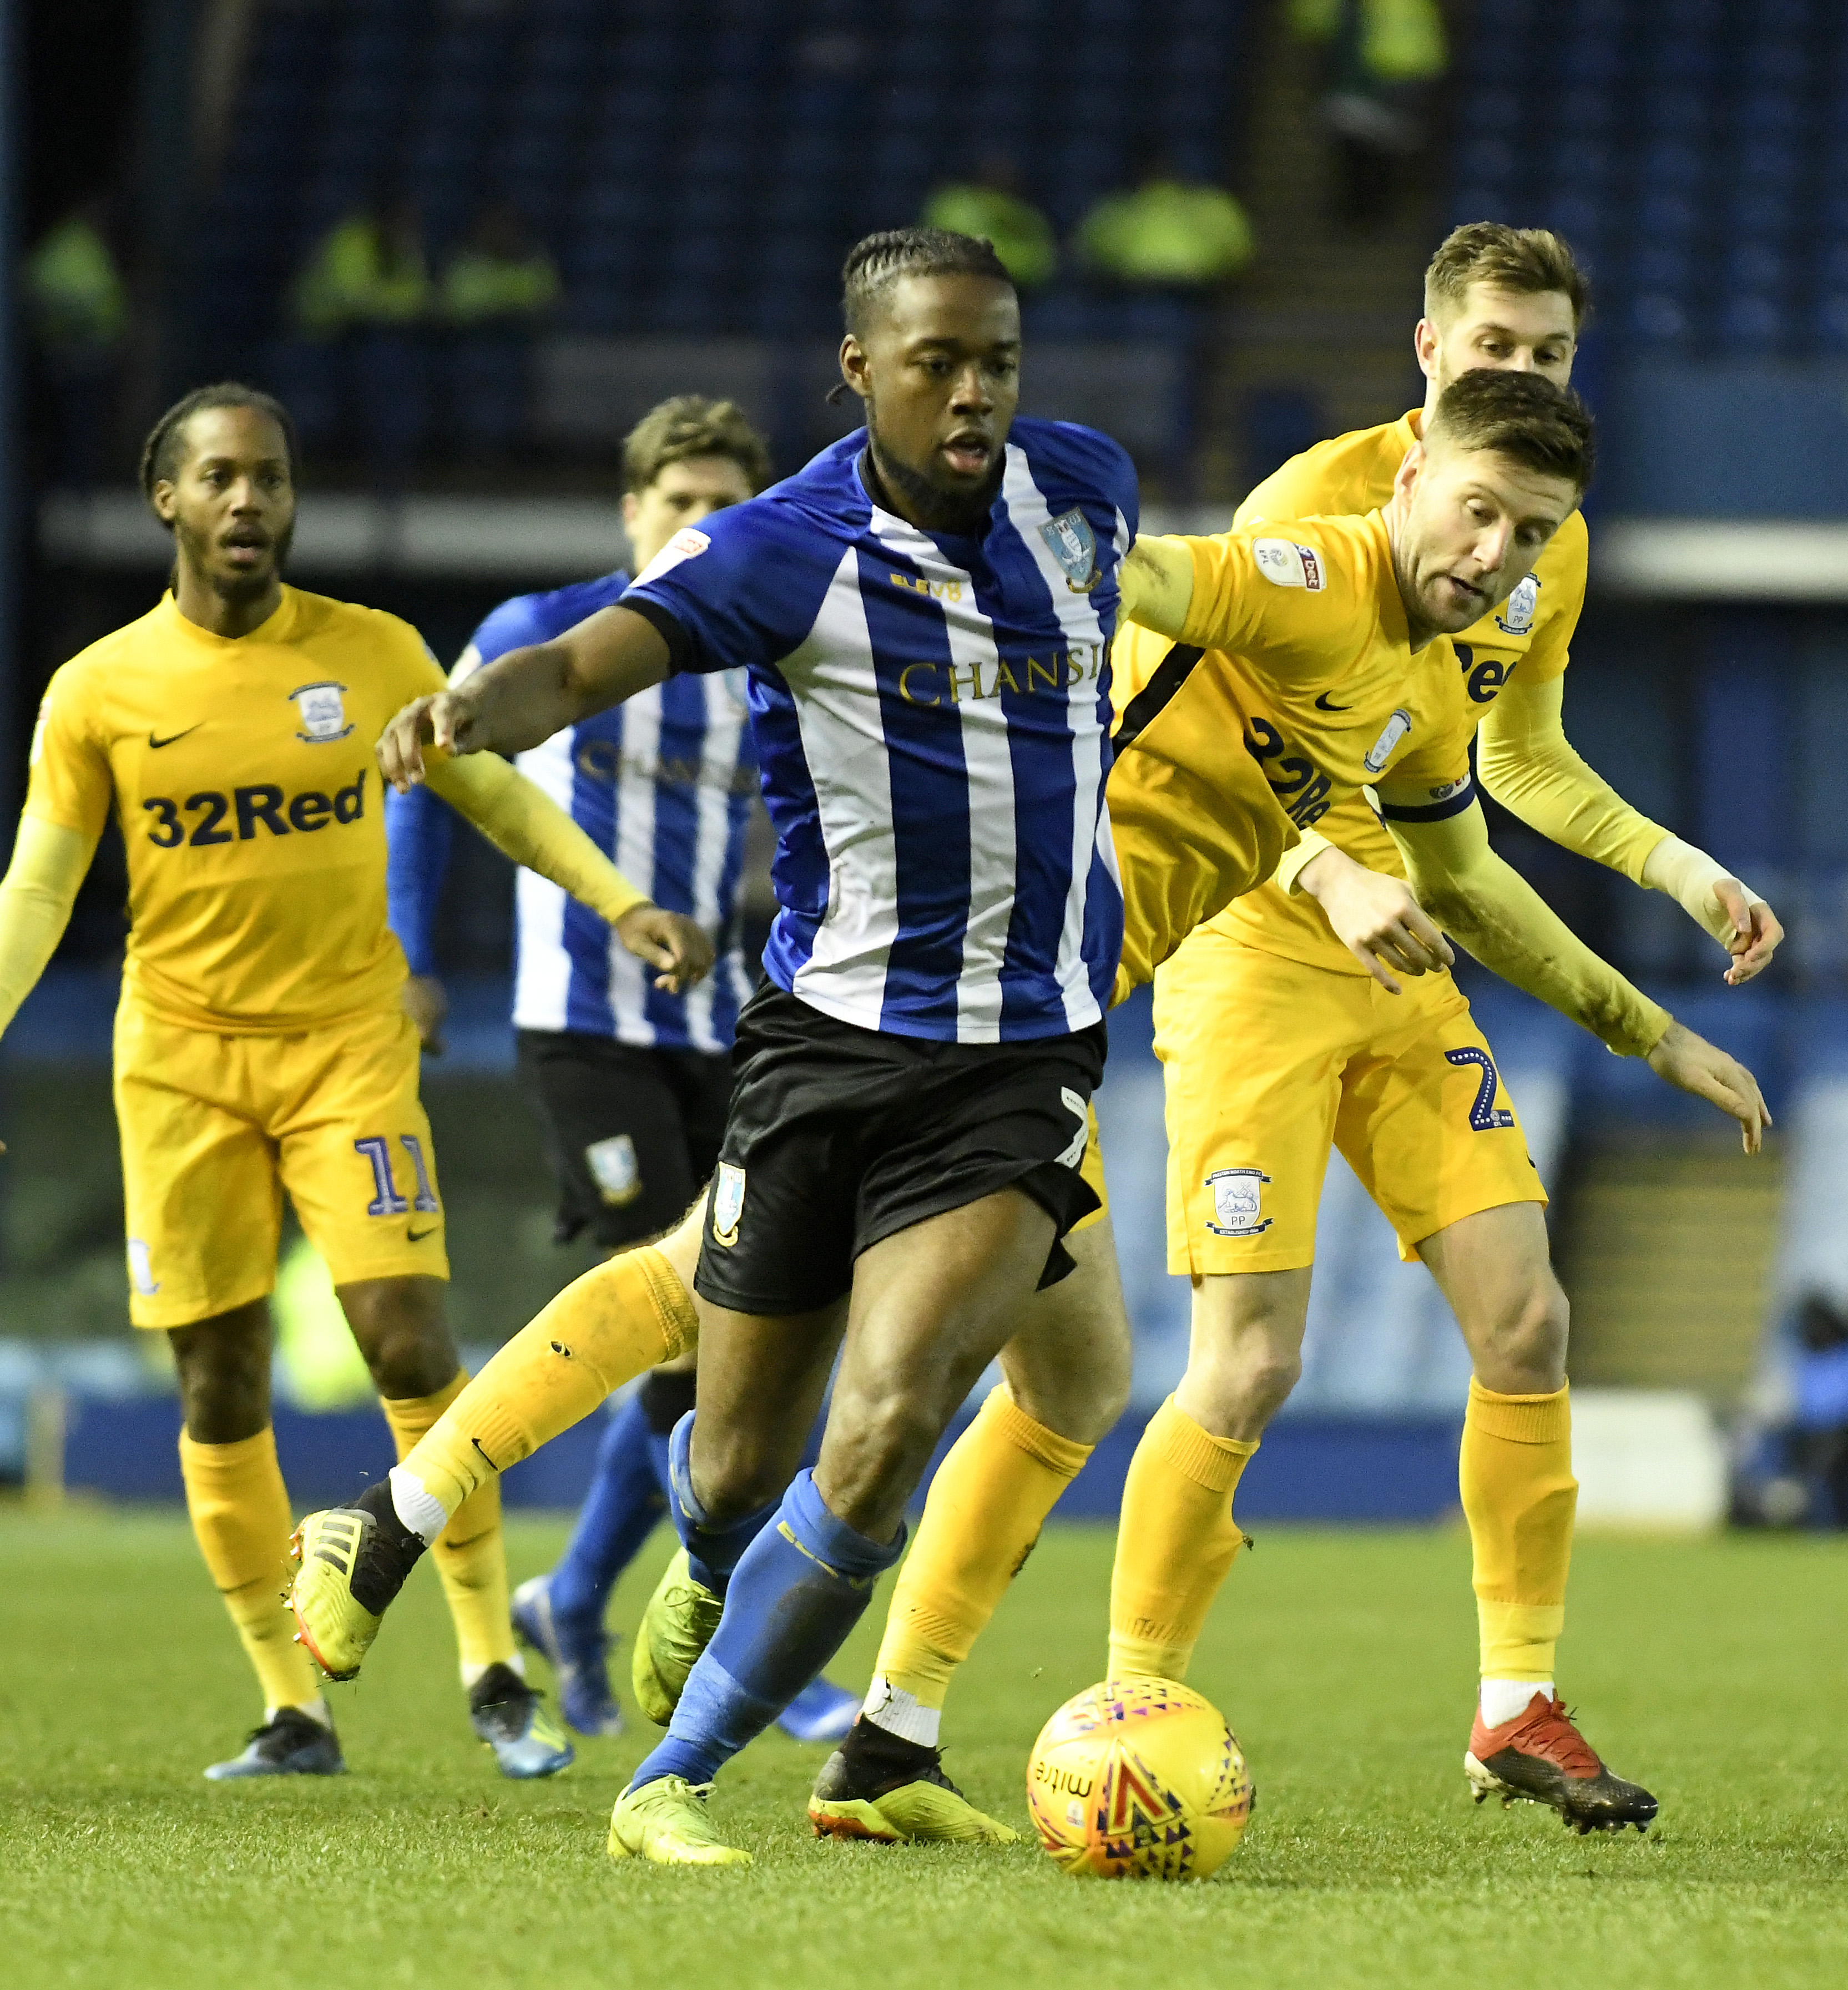 Report: Sheffield Wednesday in negotiations with Tottenham for permanent transfer of Josh Onomah